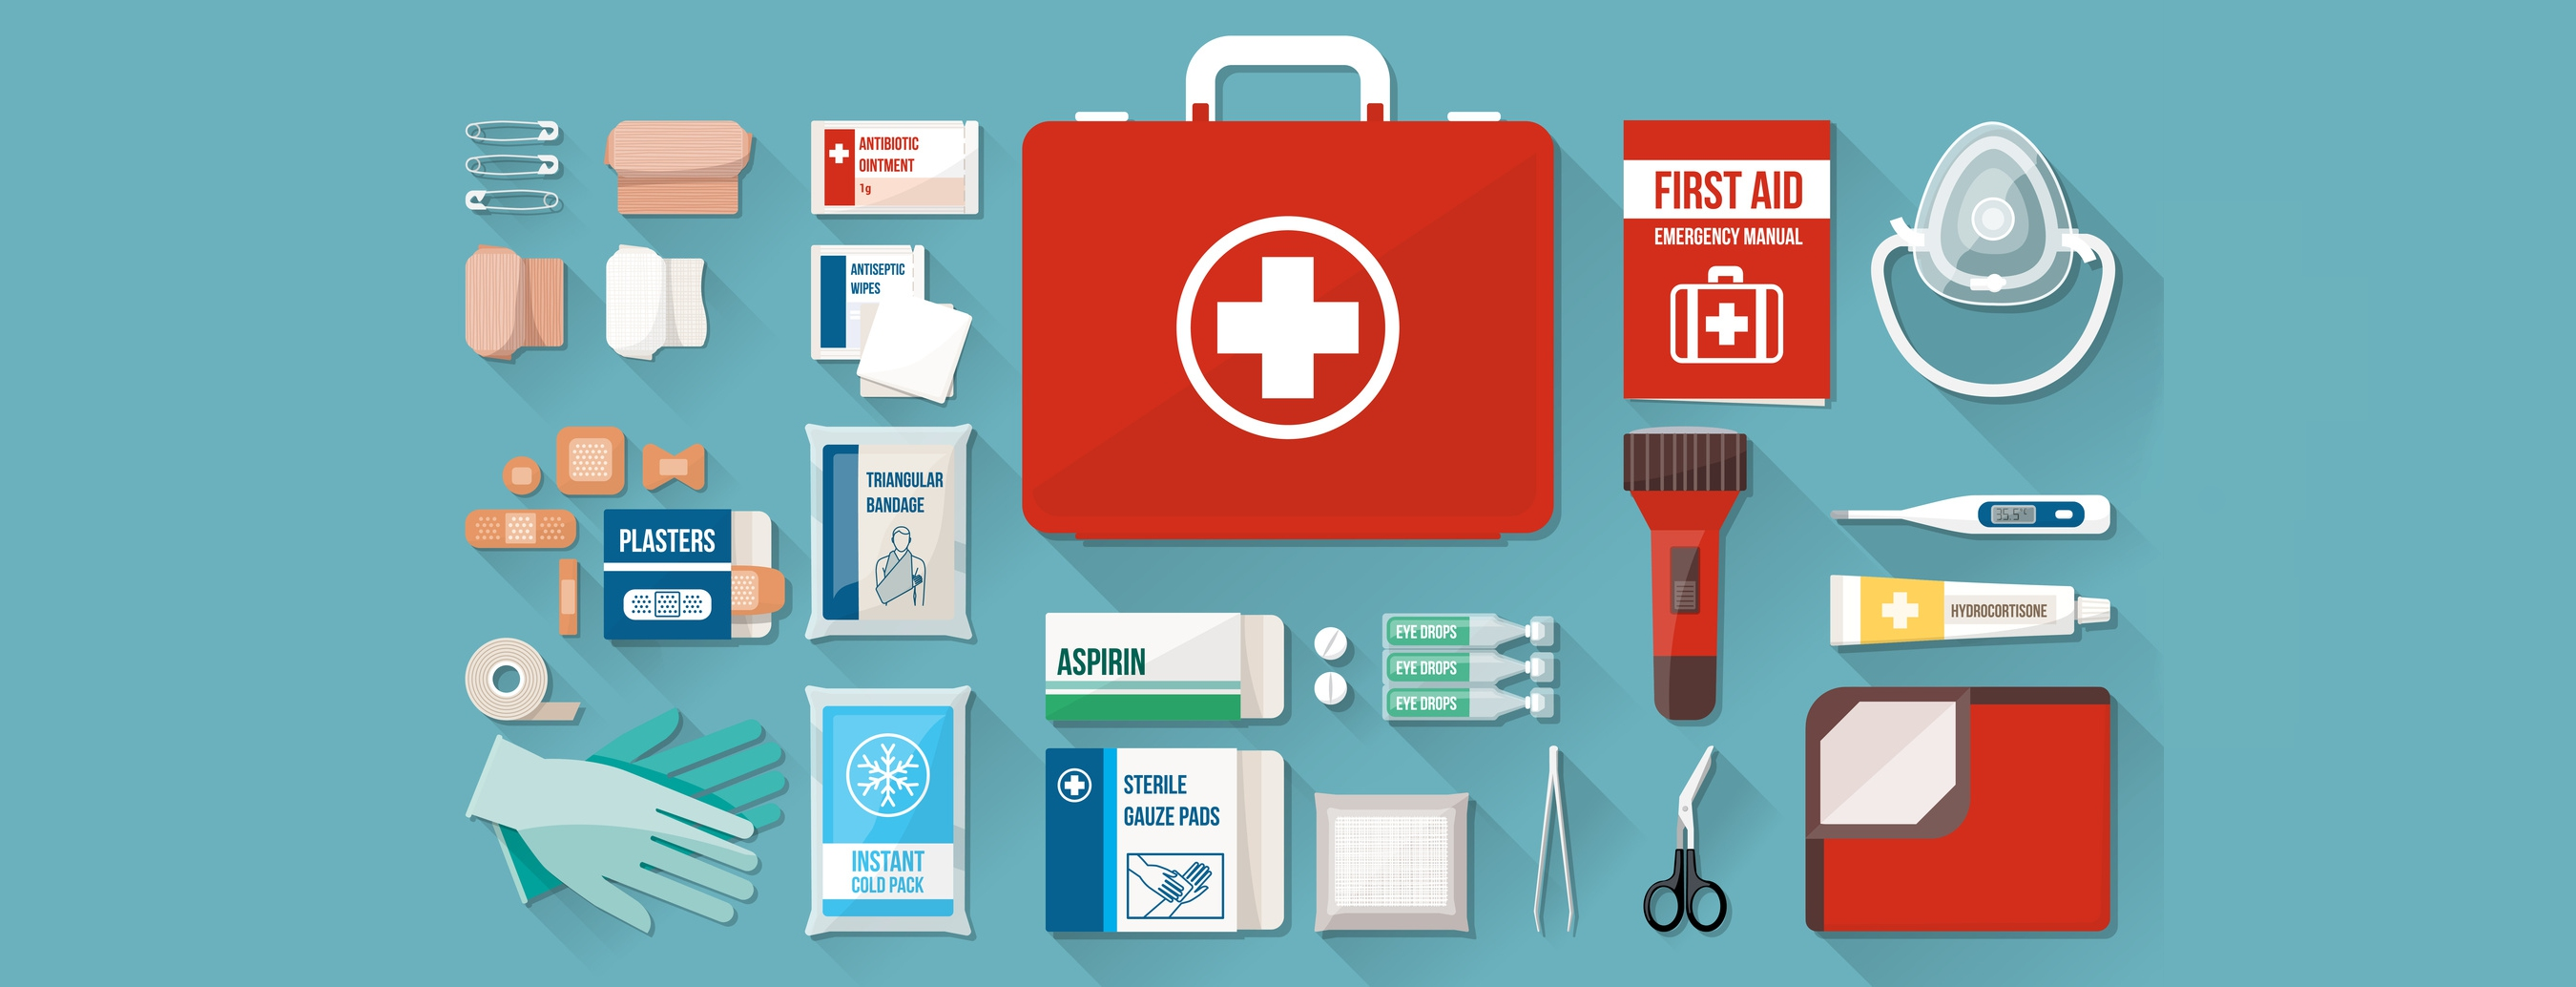 first ad items, first aid kit items, thing in a kit, things in a first aid kit